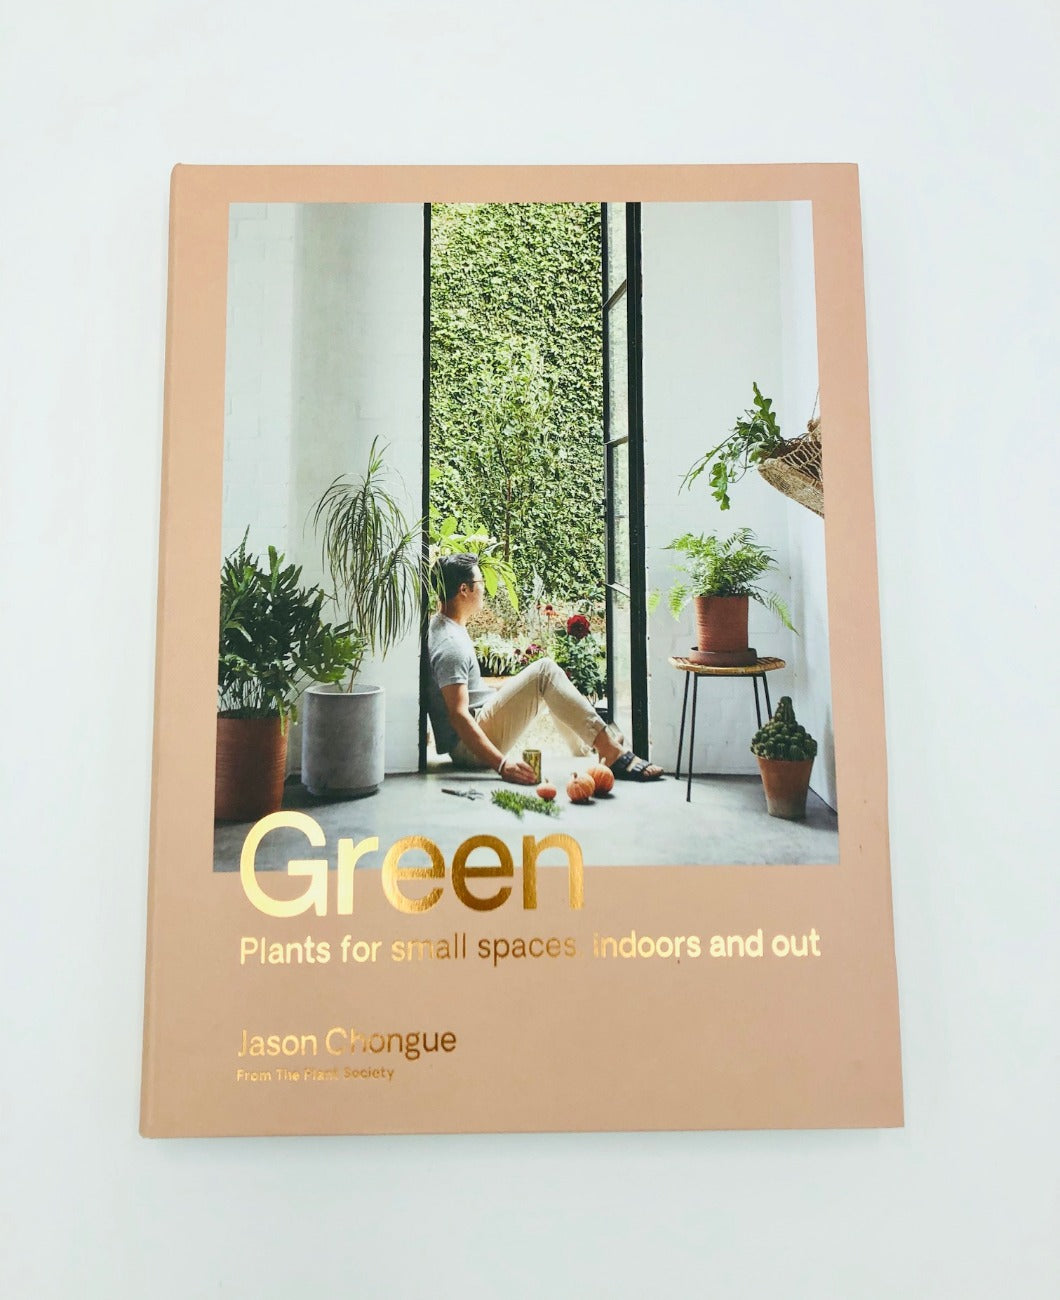 Green: Plants small spaces, indoors & out